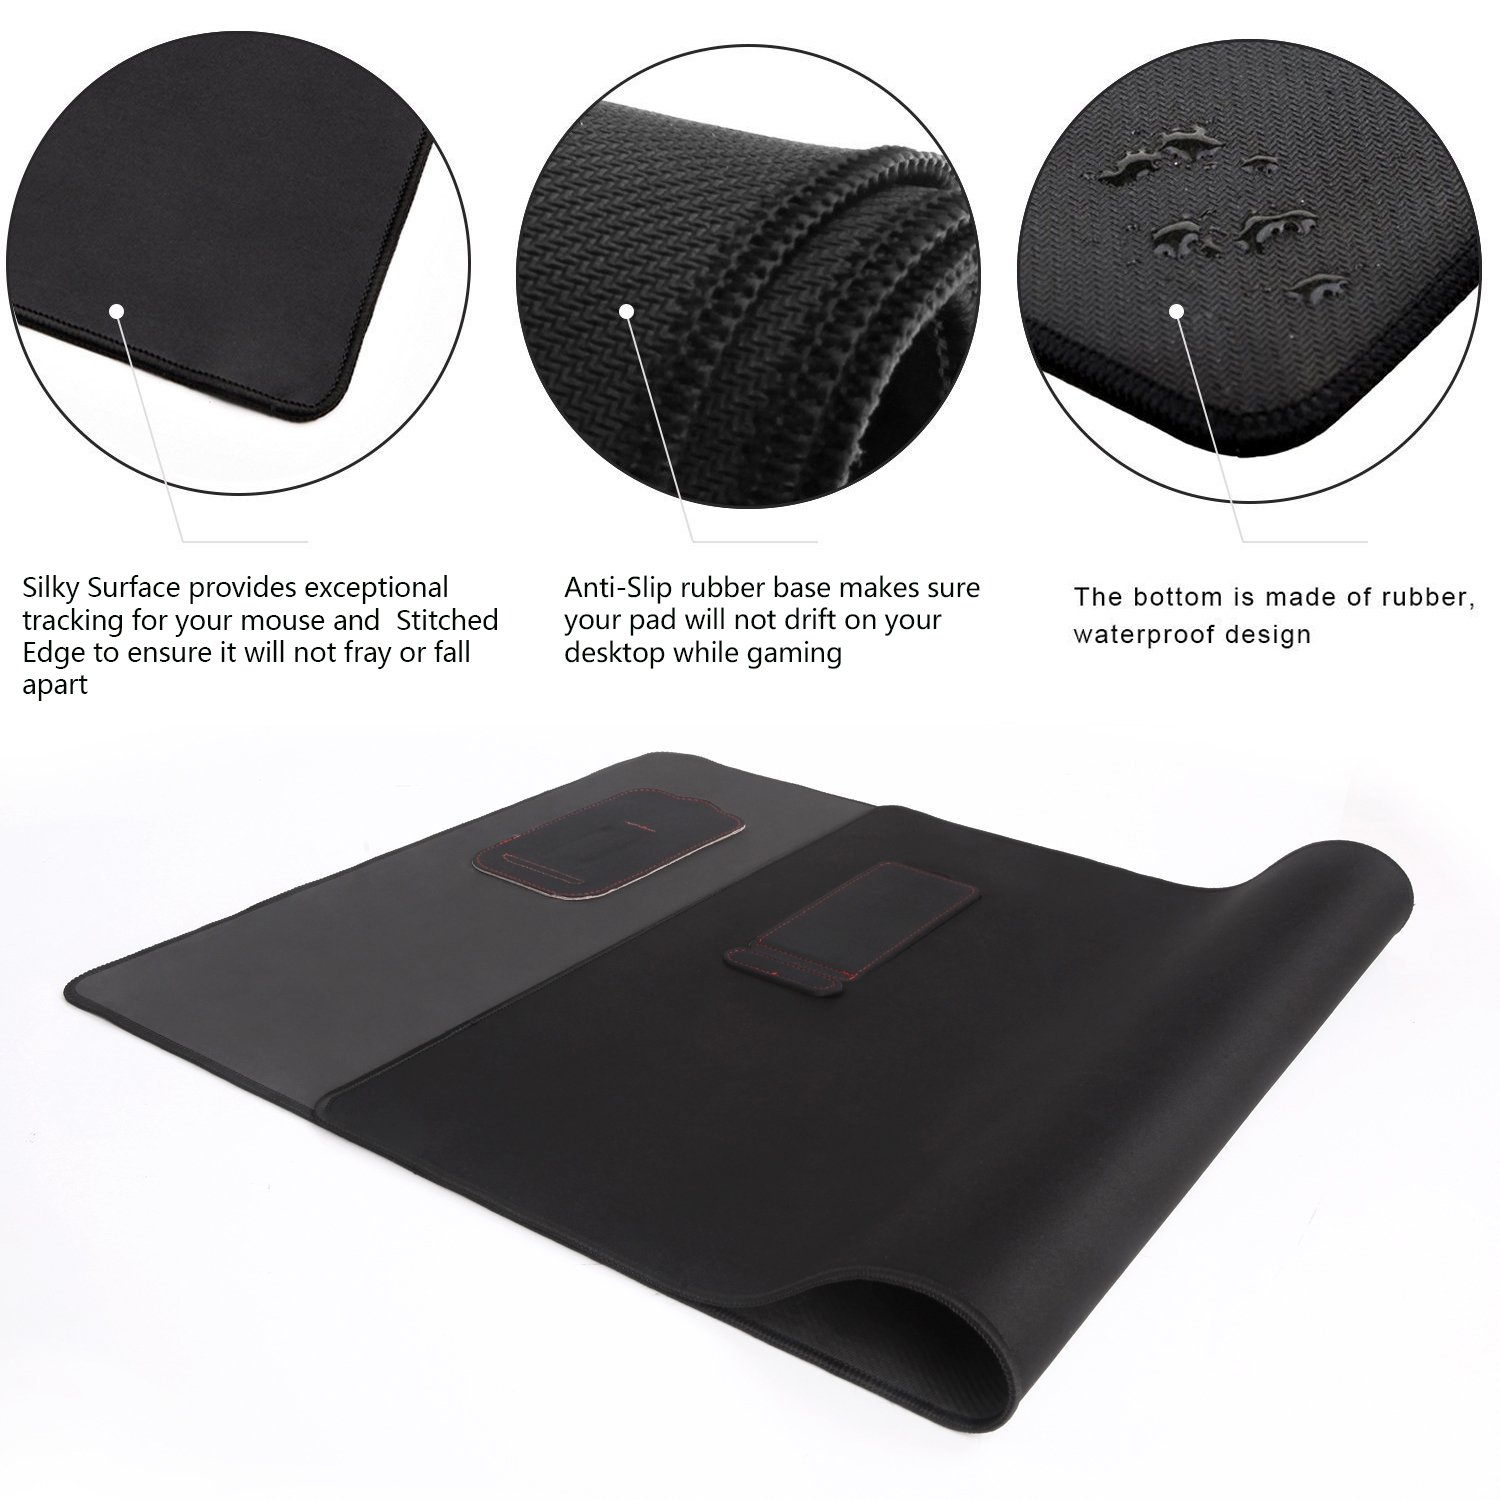 Large Extended Gaming Mouse Pad XXL, Vogek Thick Large 34''x23'' Computer Keyboard Mouse Mat Waterproof Desk Pad with 2 Kick Stands for Smart Phones Black by Vogek (Image #4)